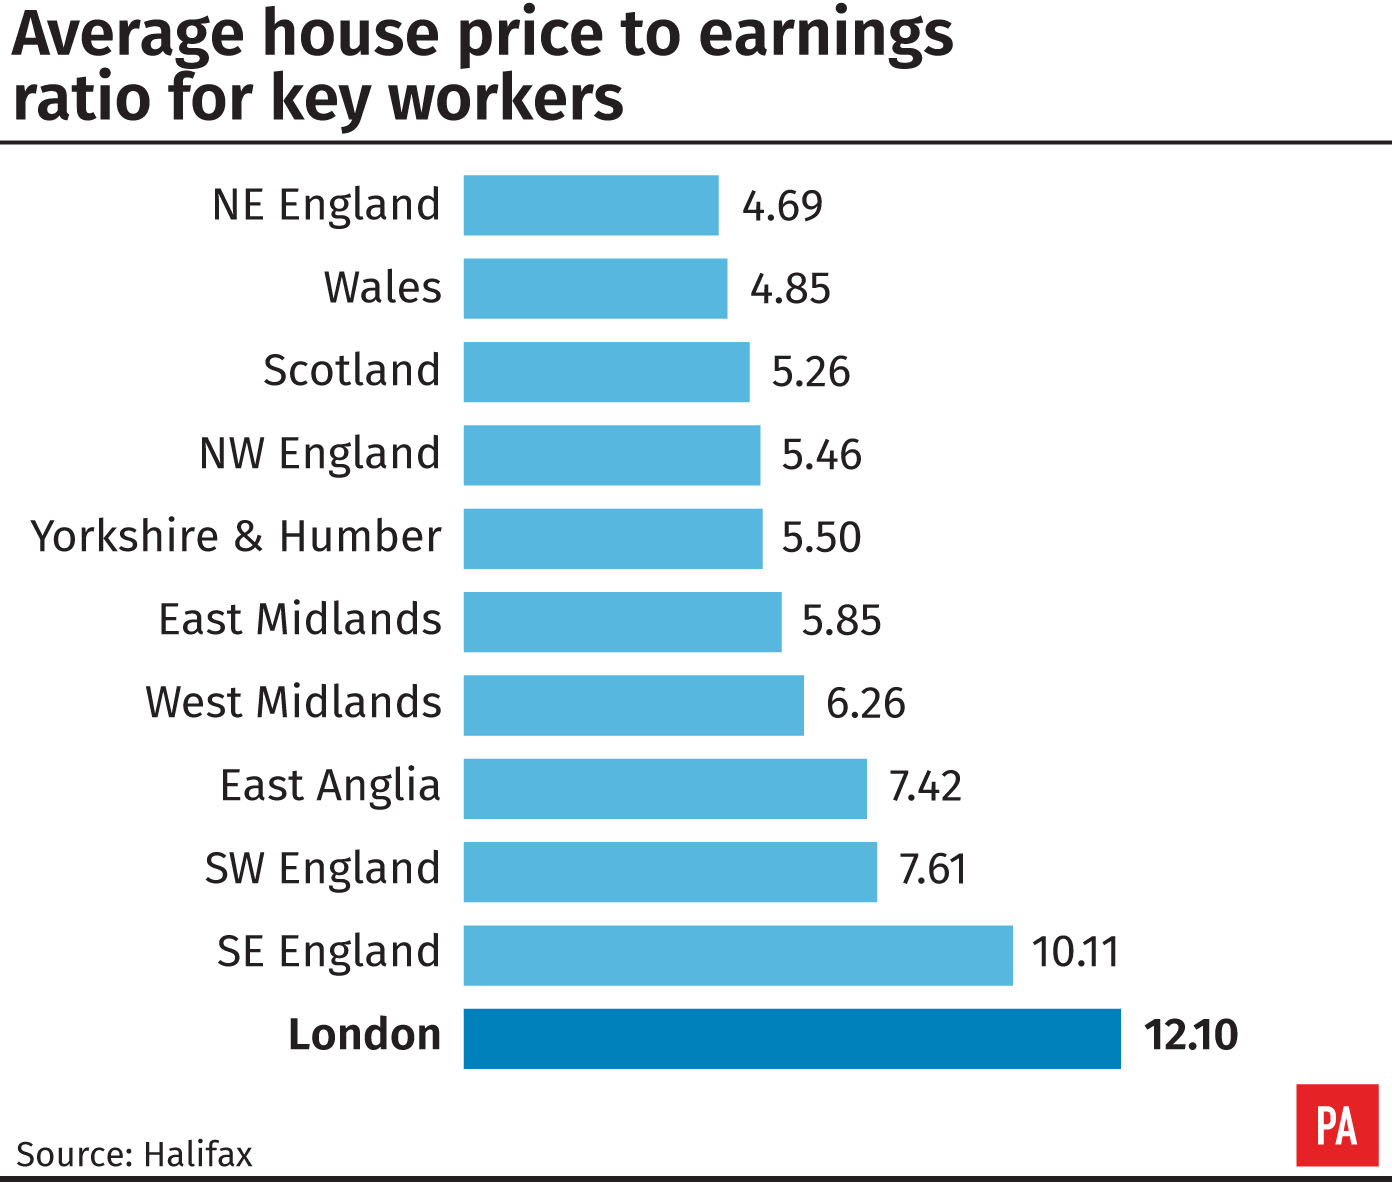 Average house price to earnings ratio for key workers